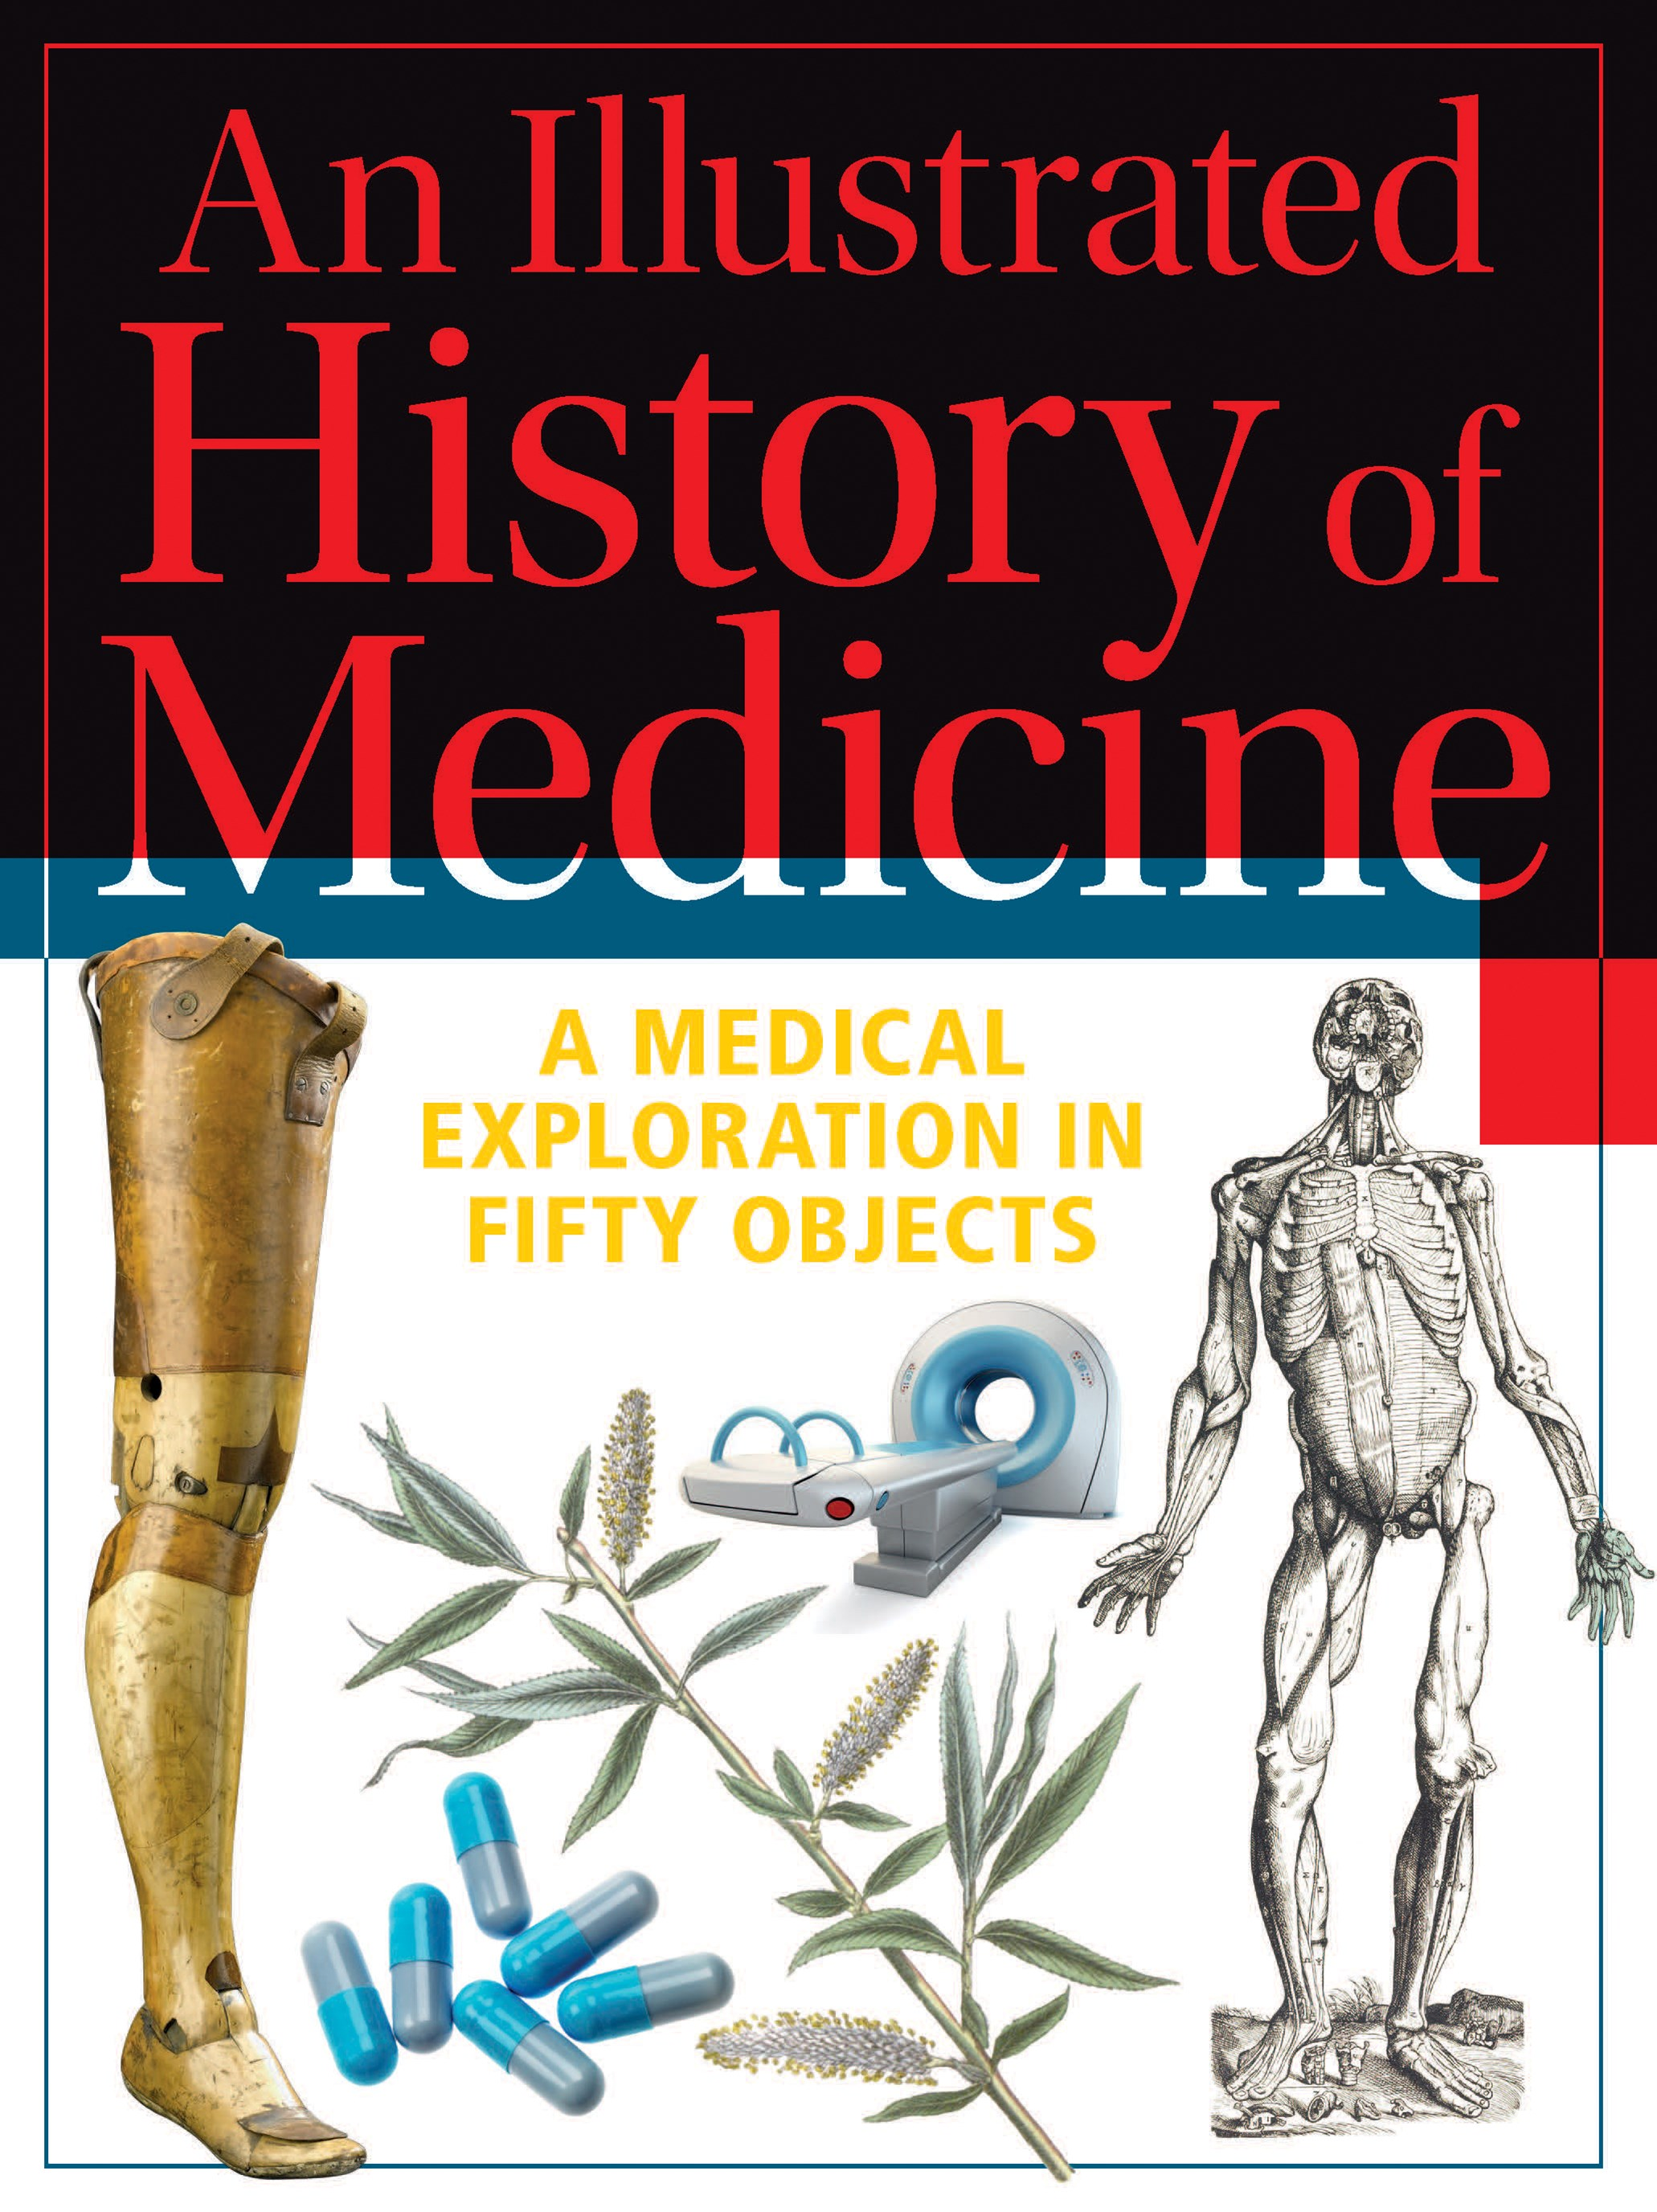 An Illustrated History of Medicine